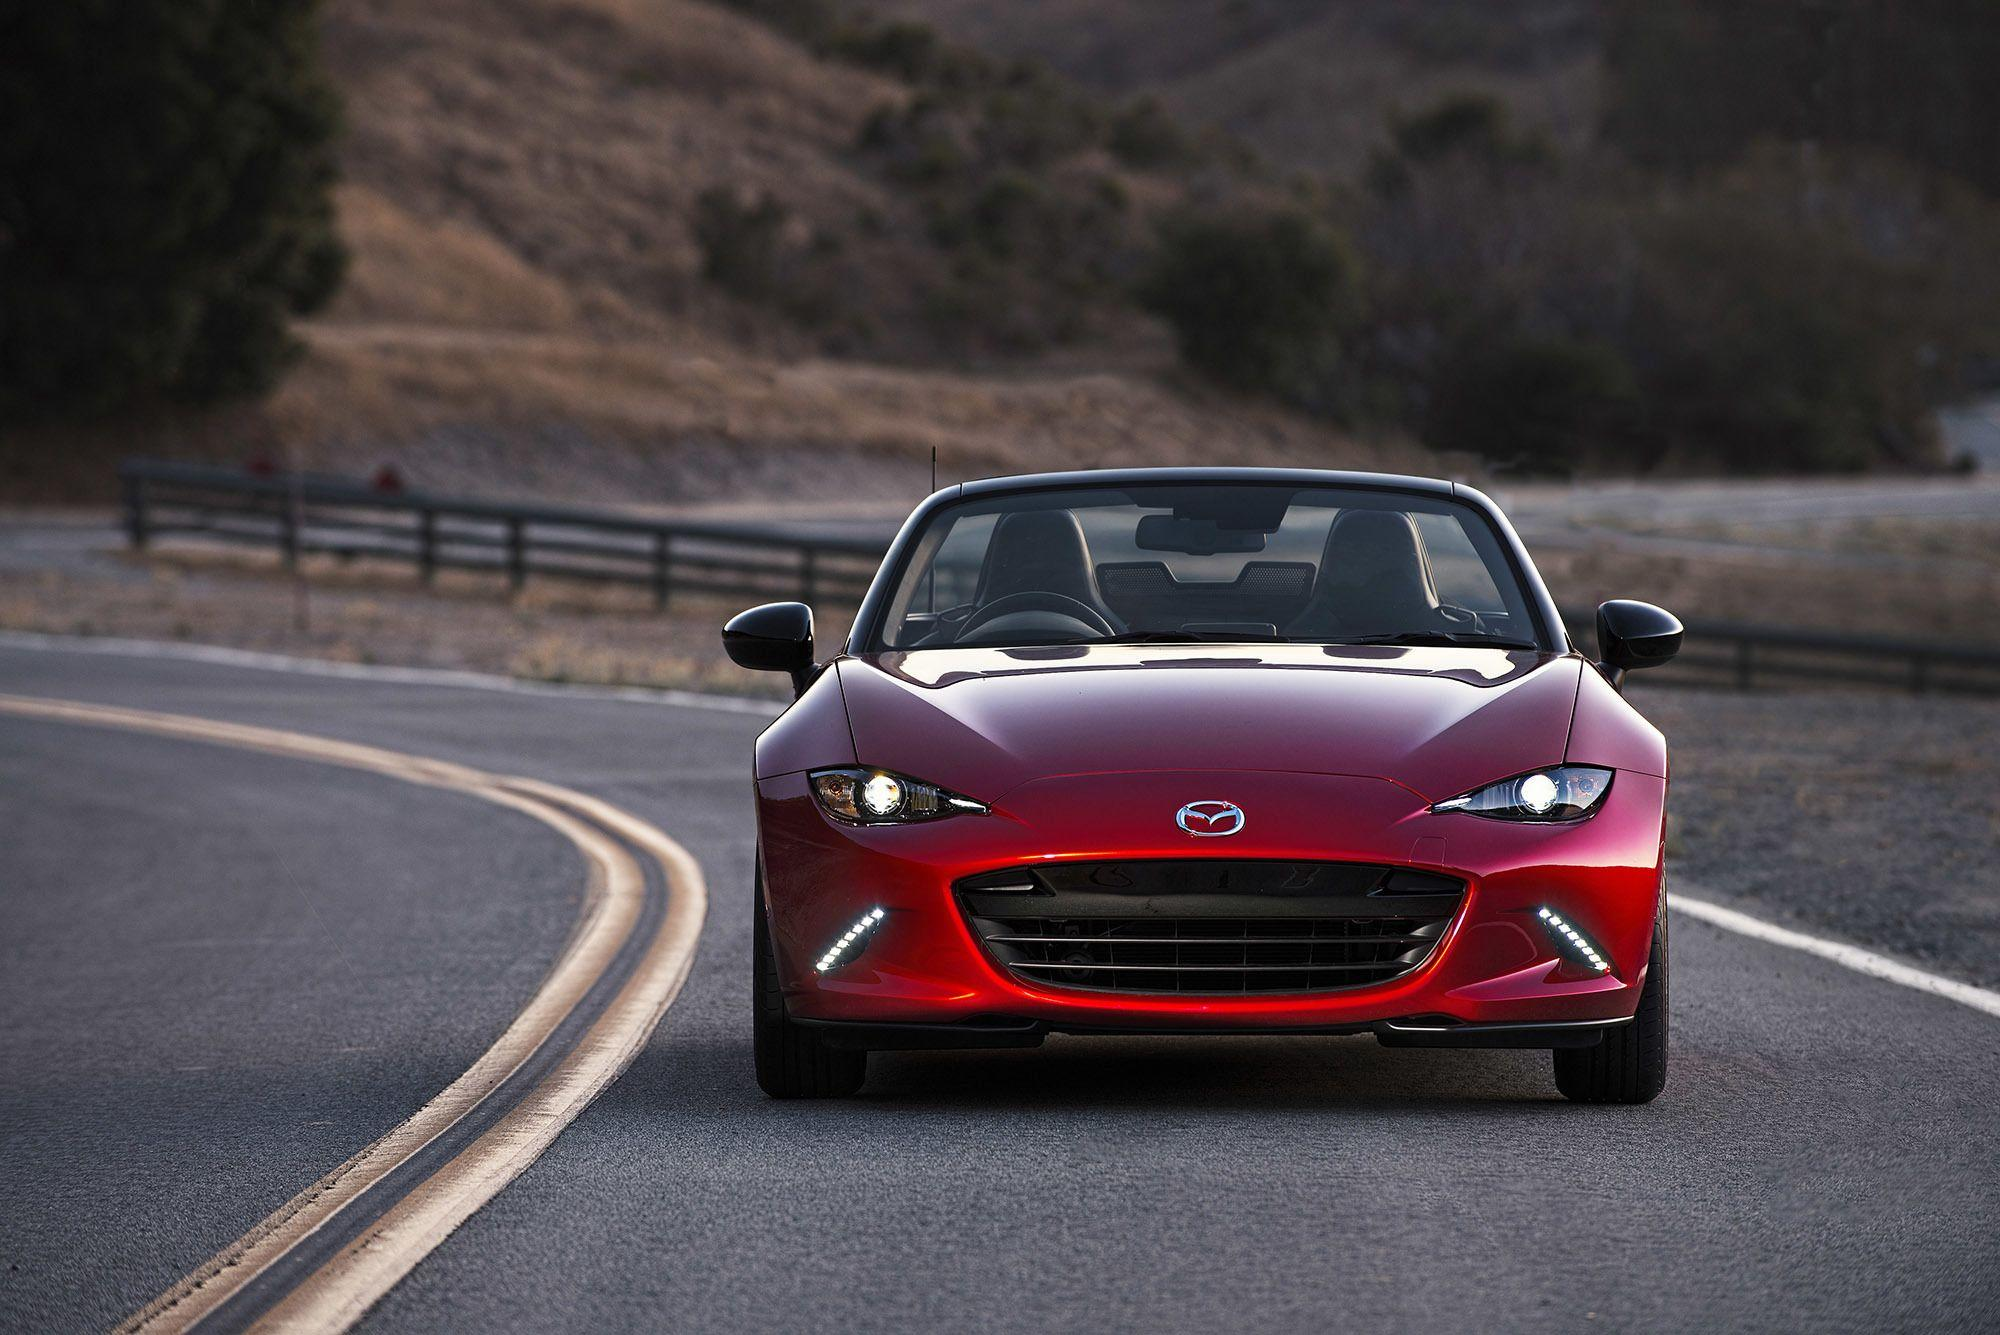 2016 Mazda MX-5 Miata Wallpaper Full HD 10588 - Nuevofence.com